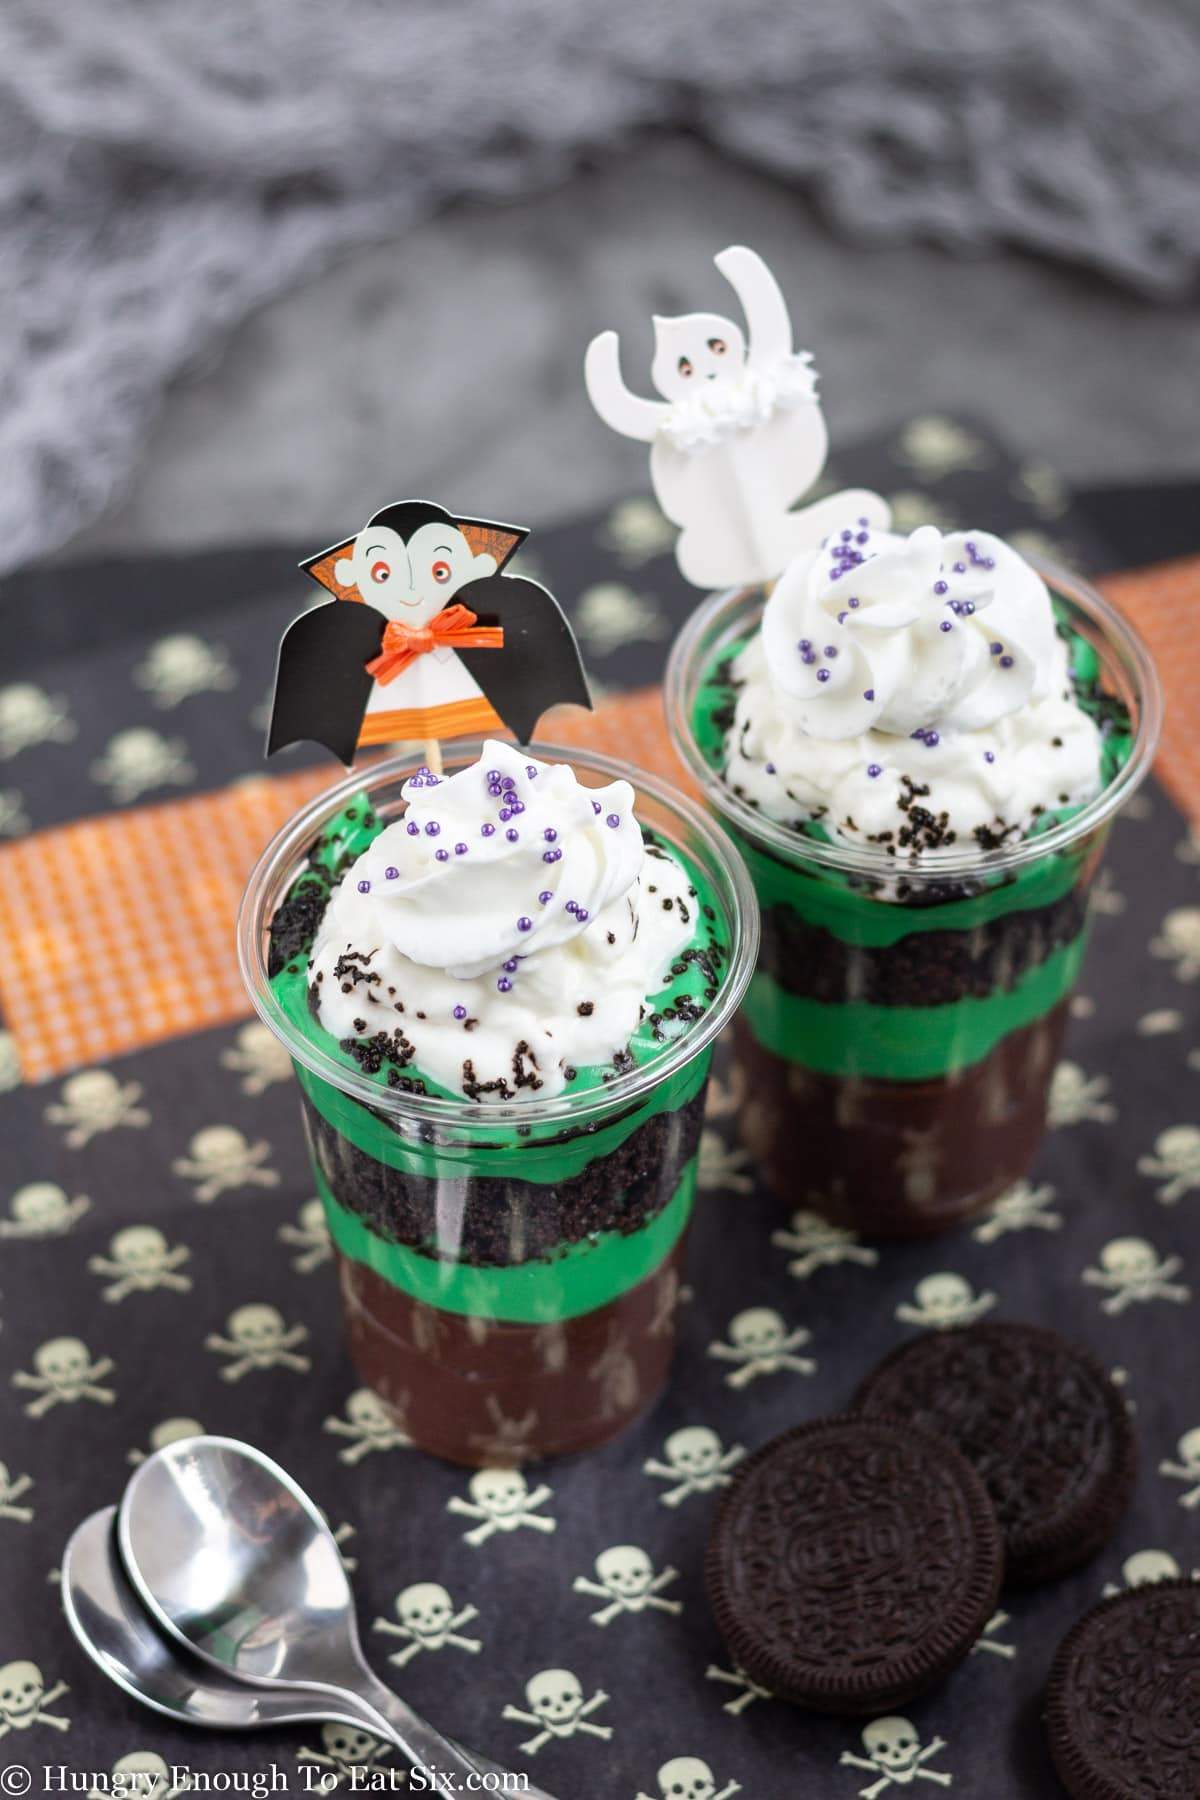 Layers of brown and green pudding in clear cups